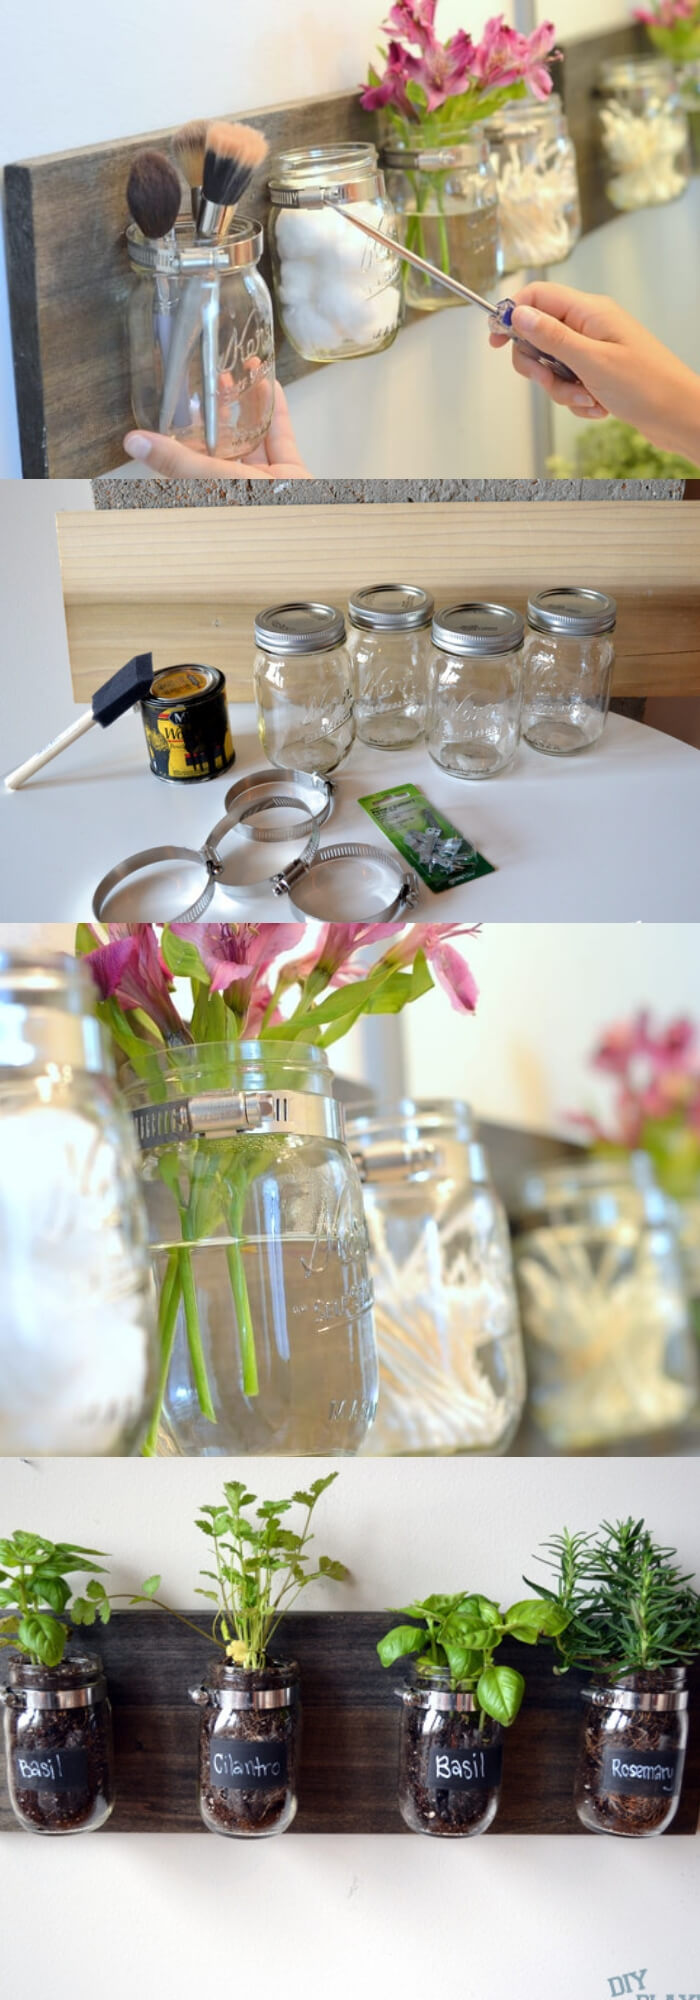 Mason Jar Organizer | Keep a Small Bathroom Organized and Clutter-Free